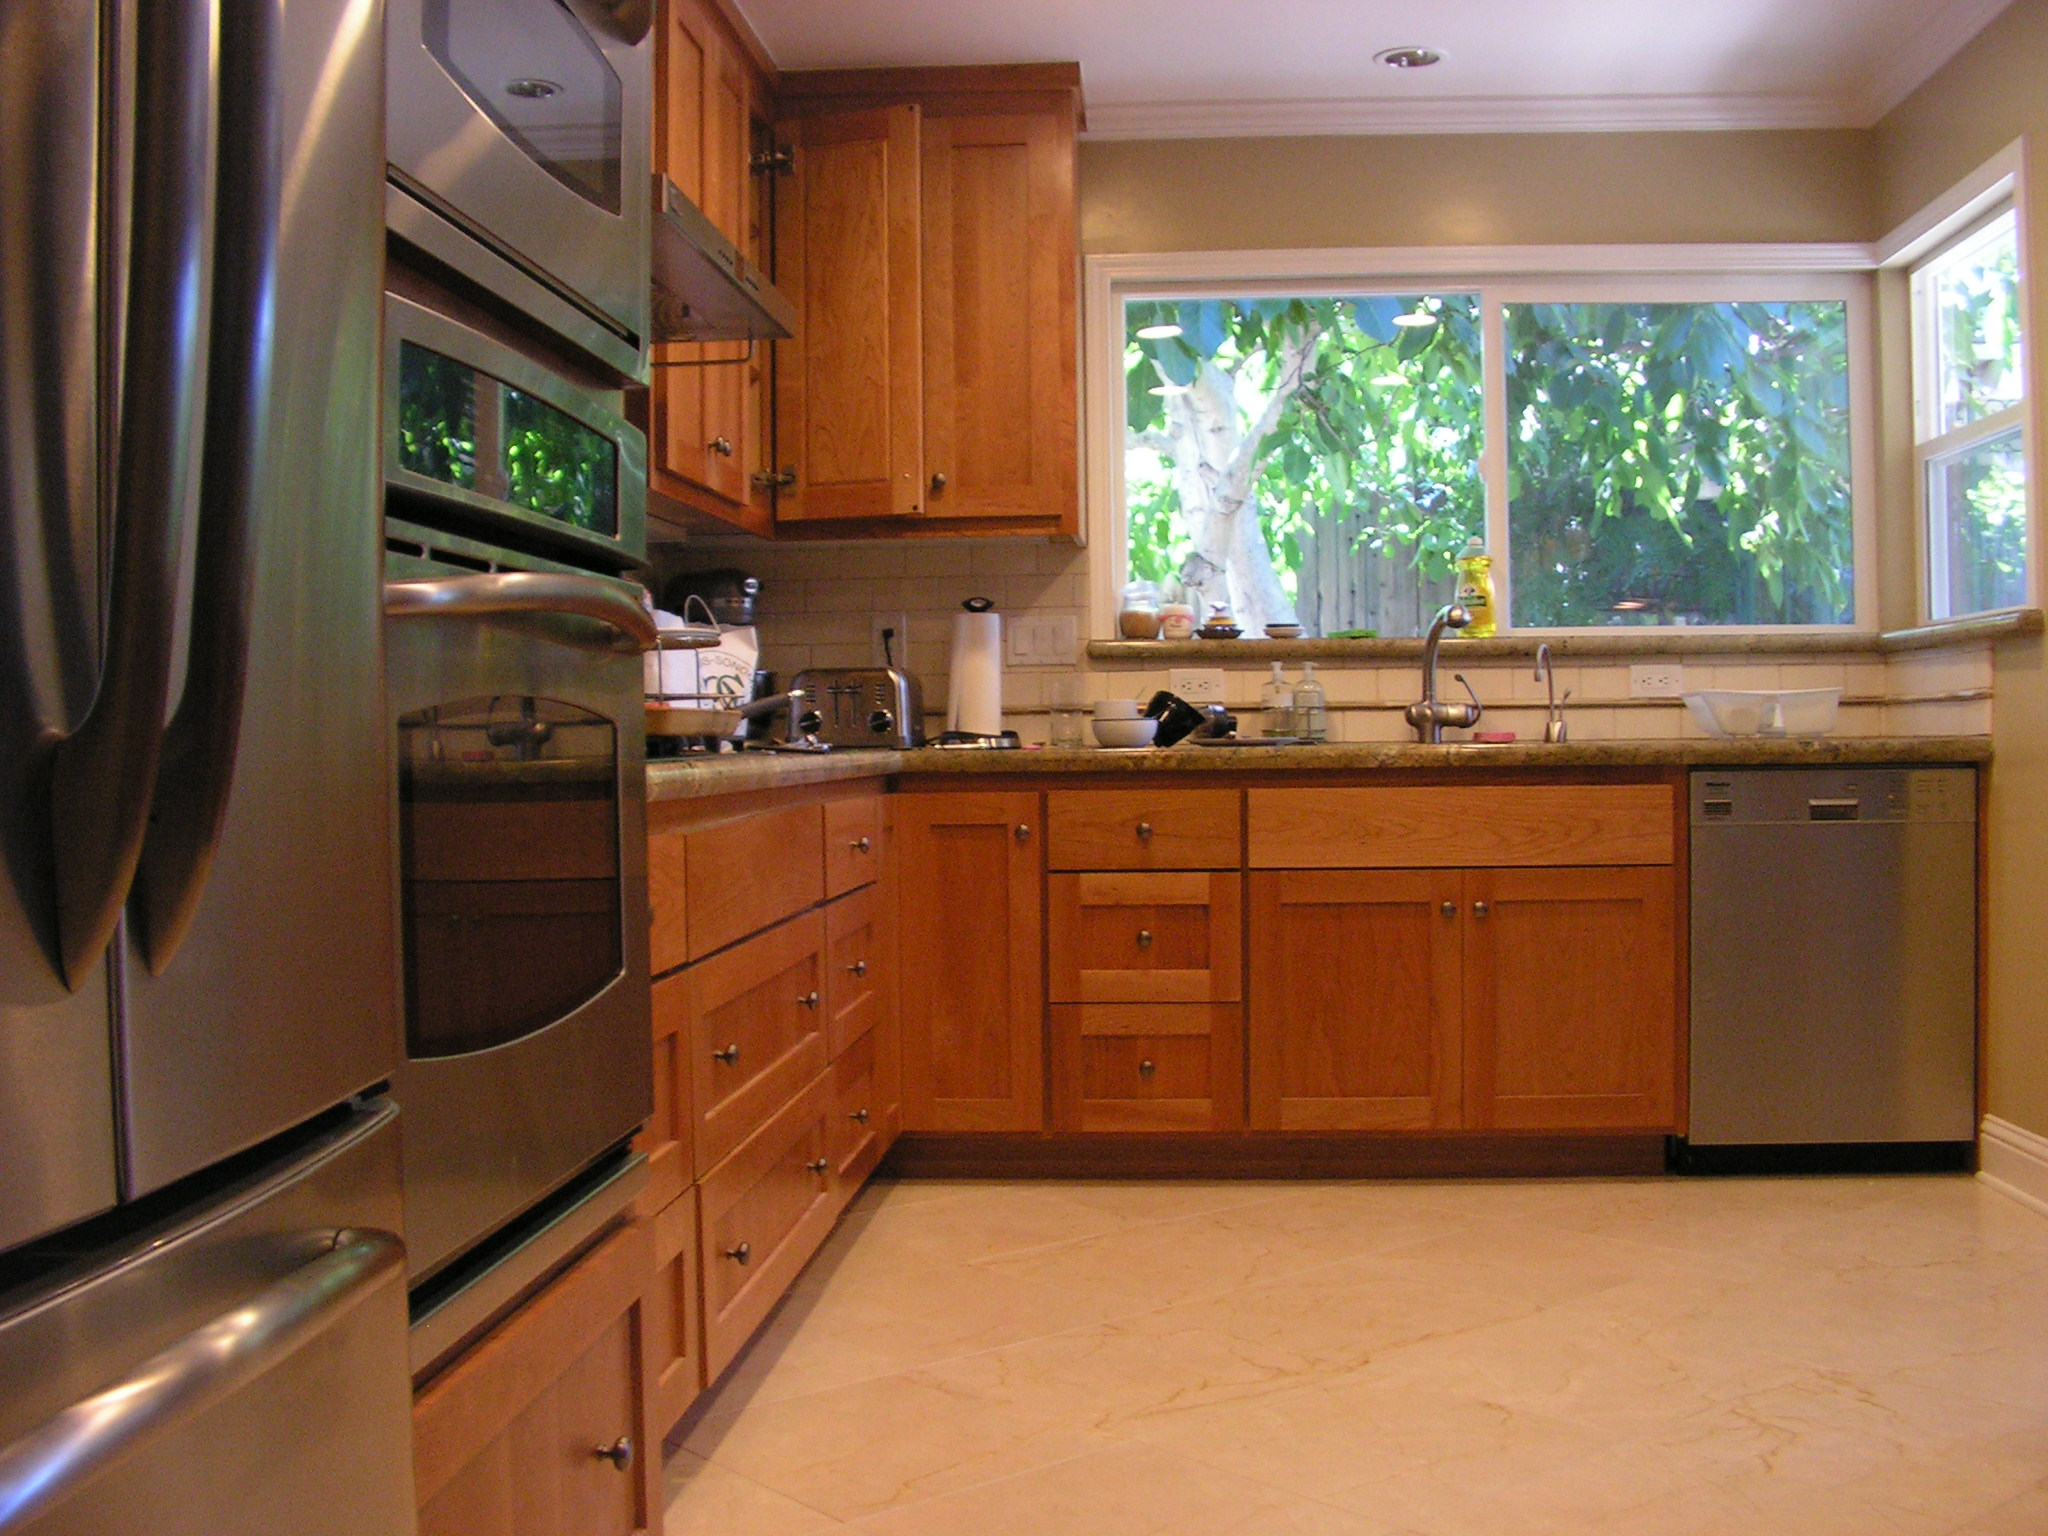 Kitchen Remodel And Cabinet Installation In San Ramon By CWI General  Contractor